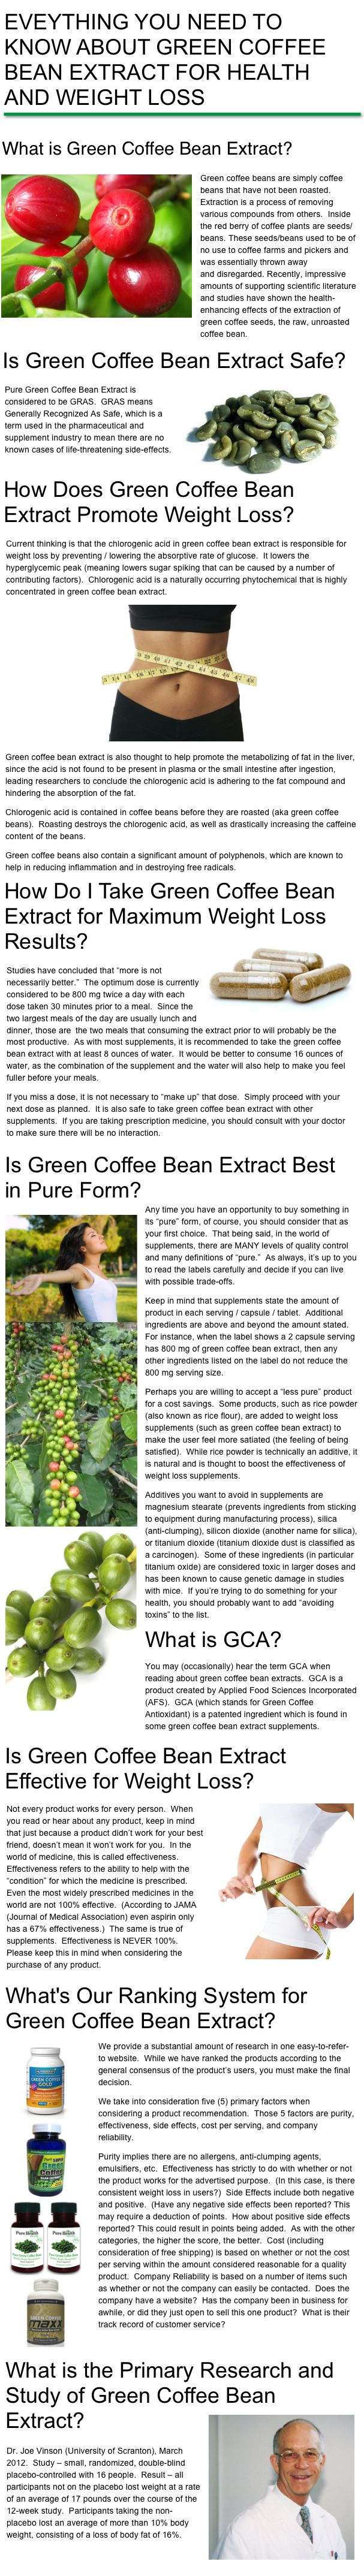 Everything you need to know about Green Coffee Bean